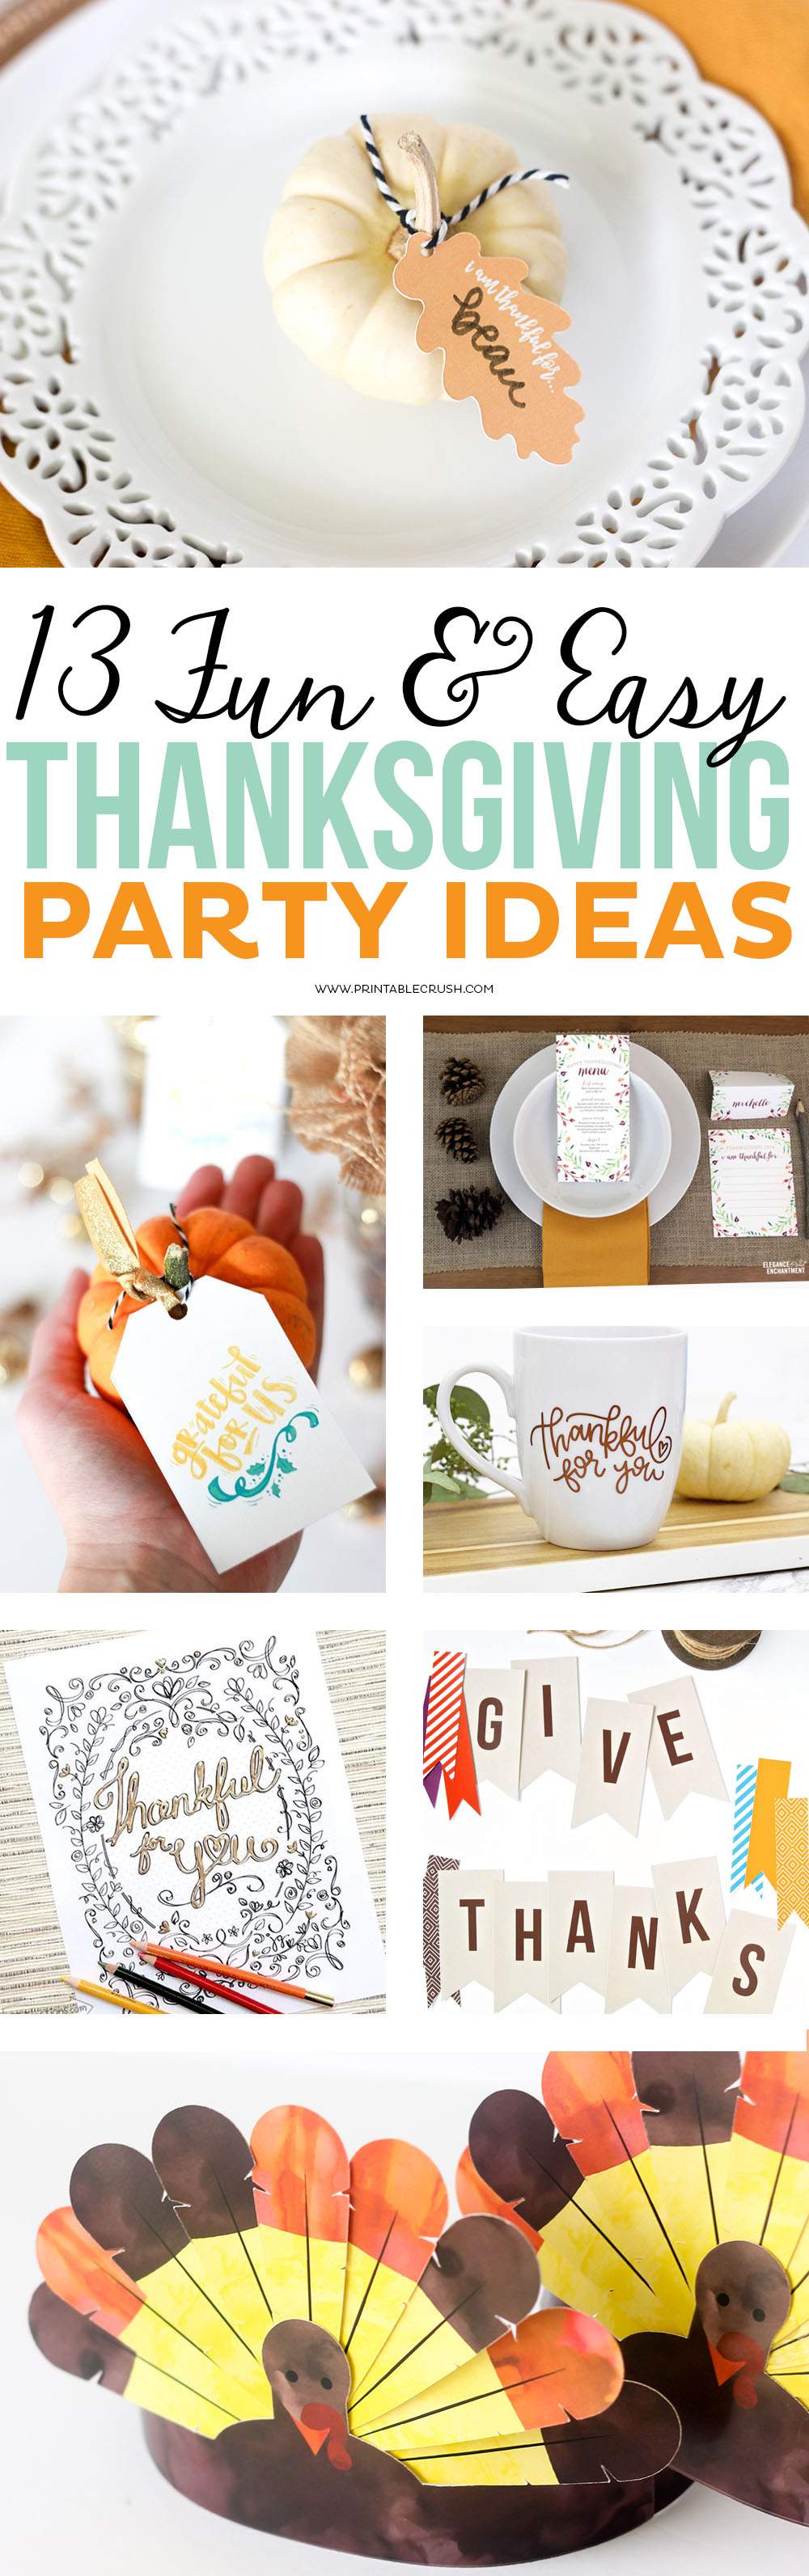 13 Thanksgiving party ideas and fun printables to enjoy with your family!!! You'll love these banners, games for kids, cut files, place setting ideas, and more! via @printablecrush